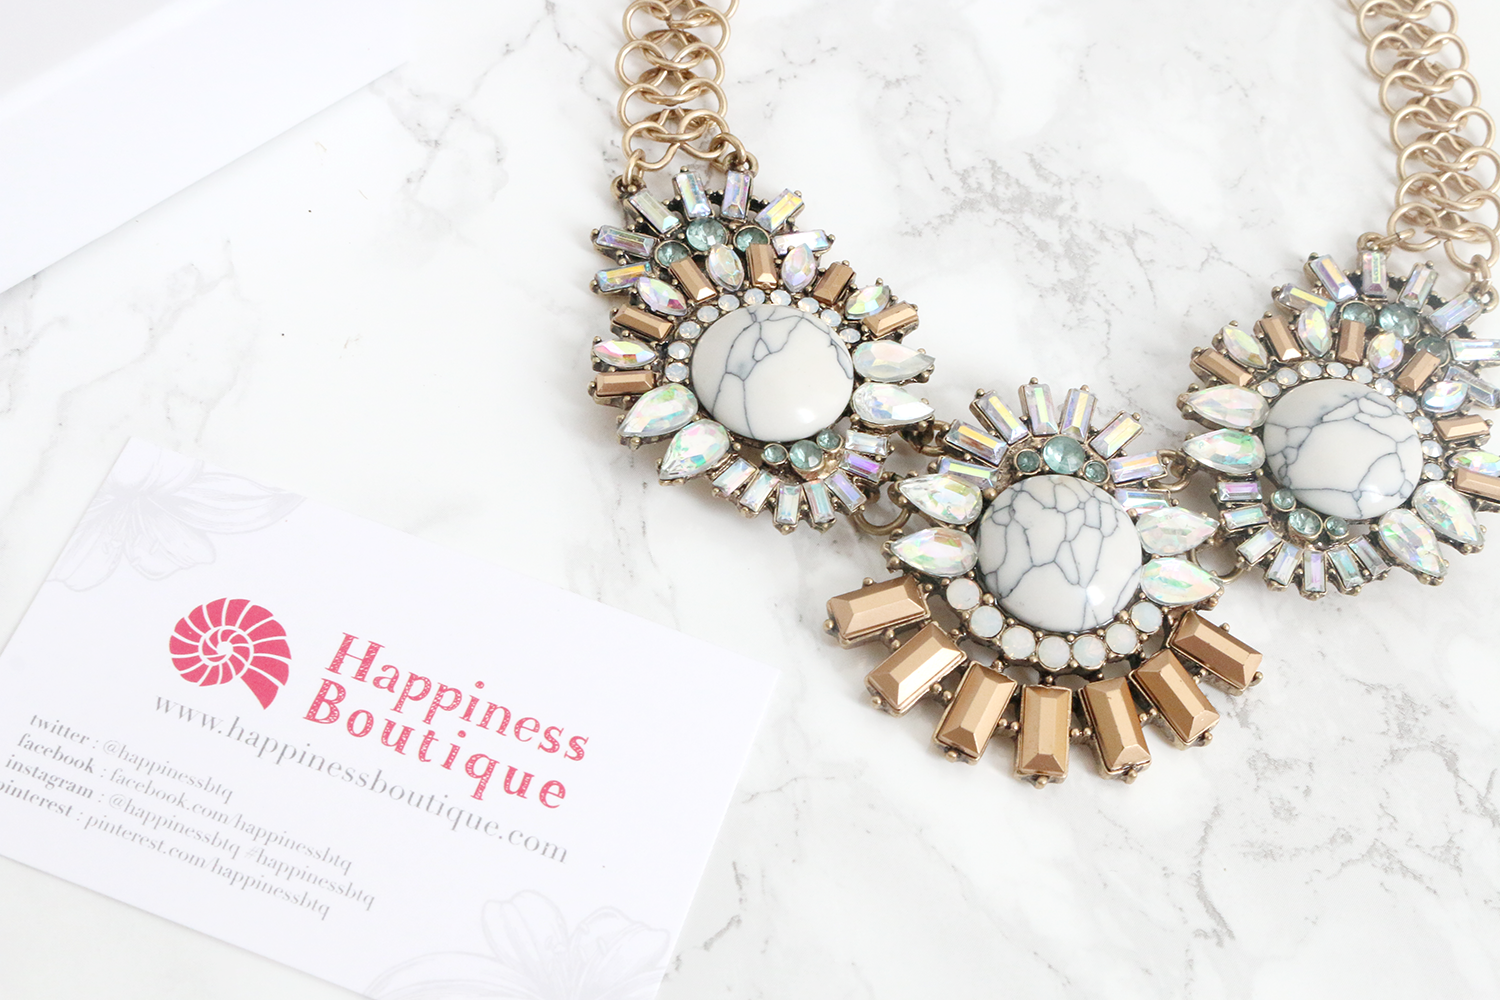 Happiness Boutique Statement Necklace